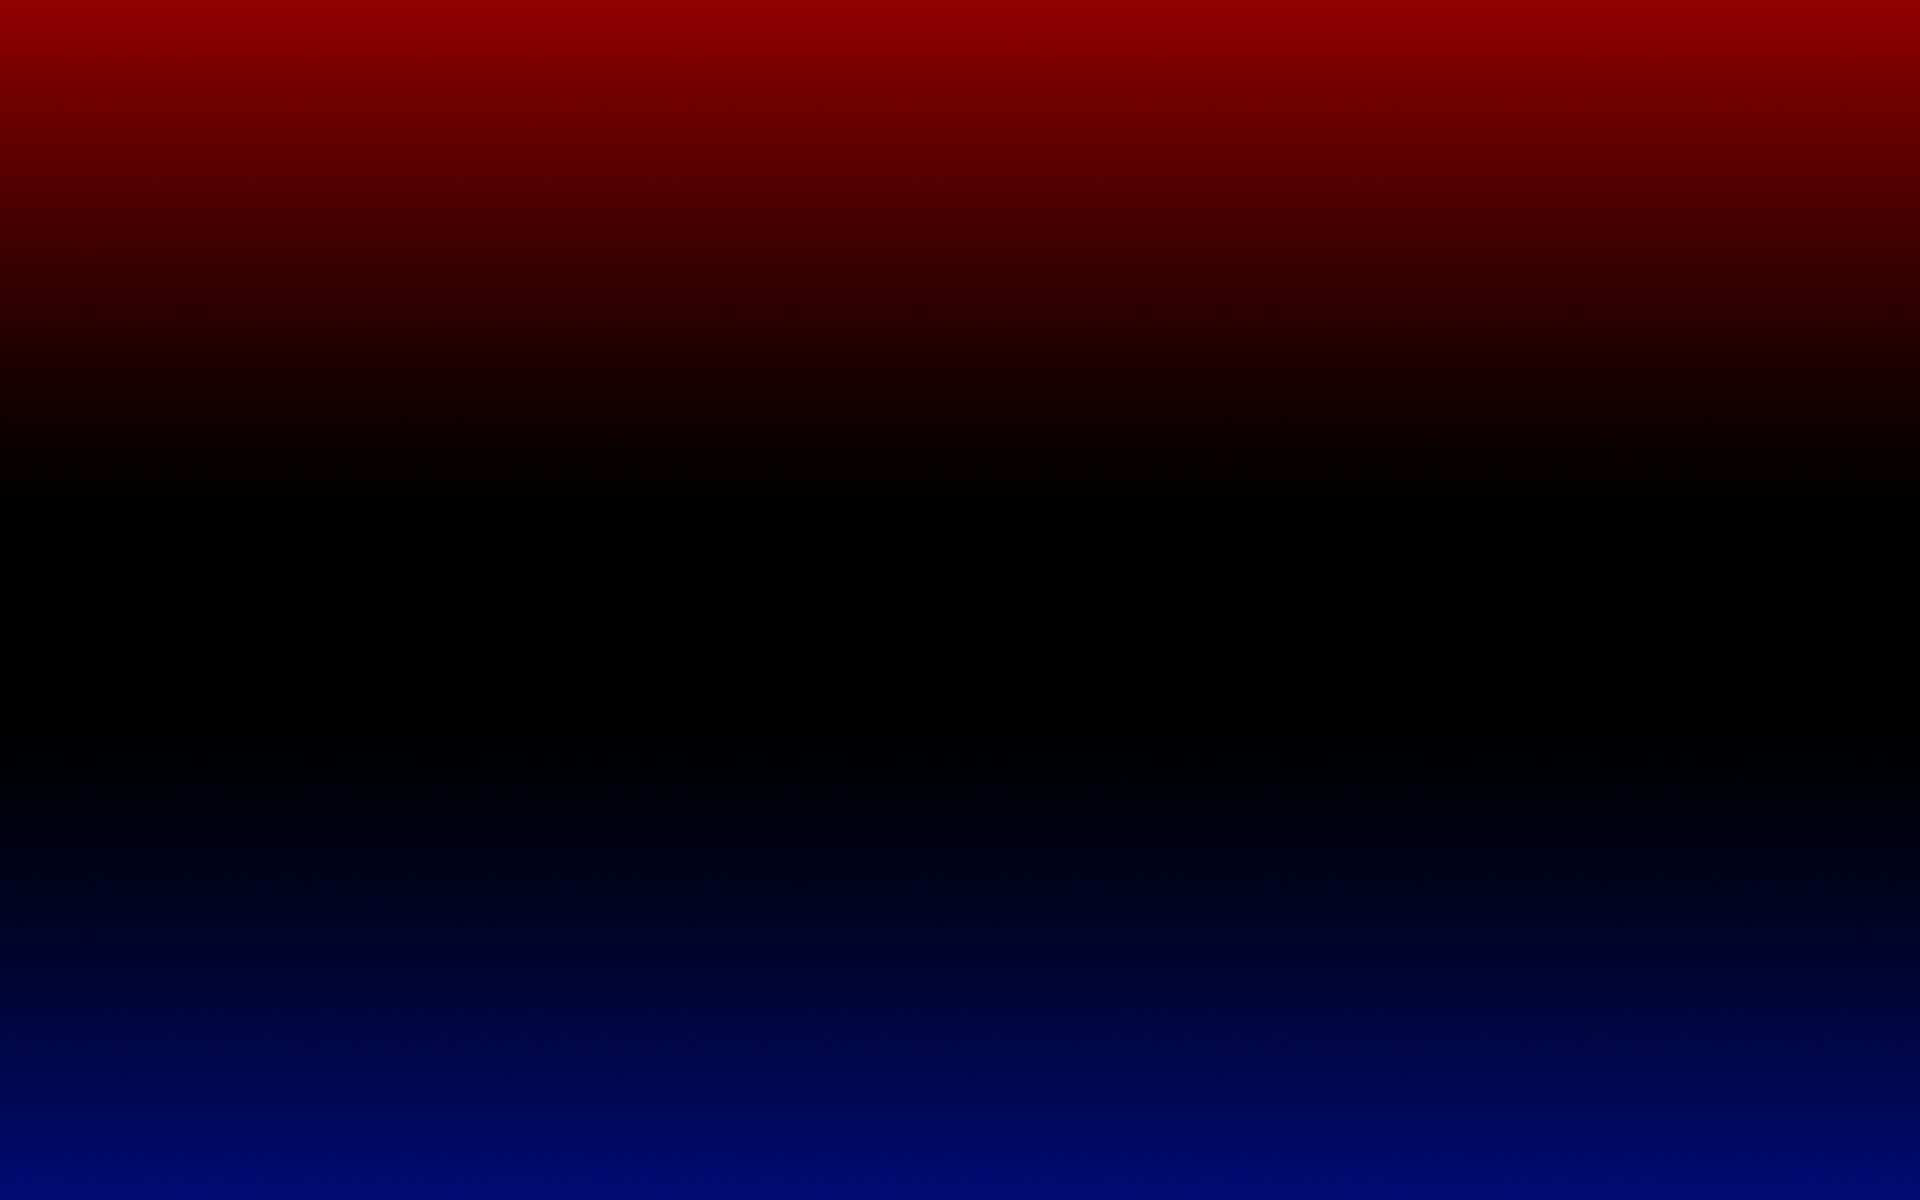 [48+] Blue and Red Wallpaper on WallpaperSafari